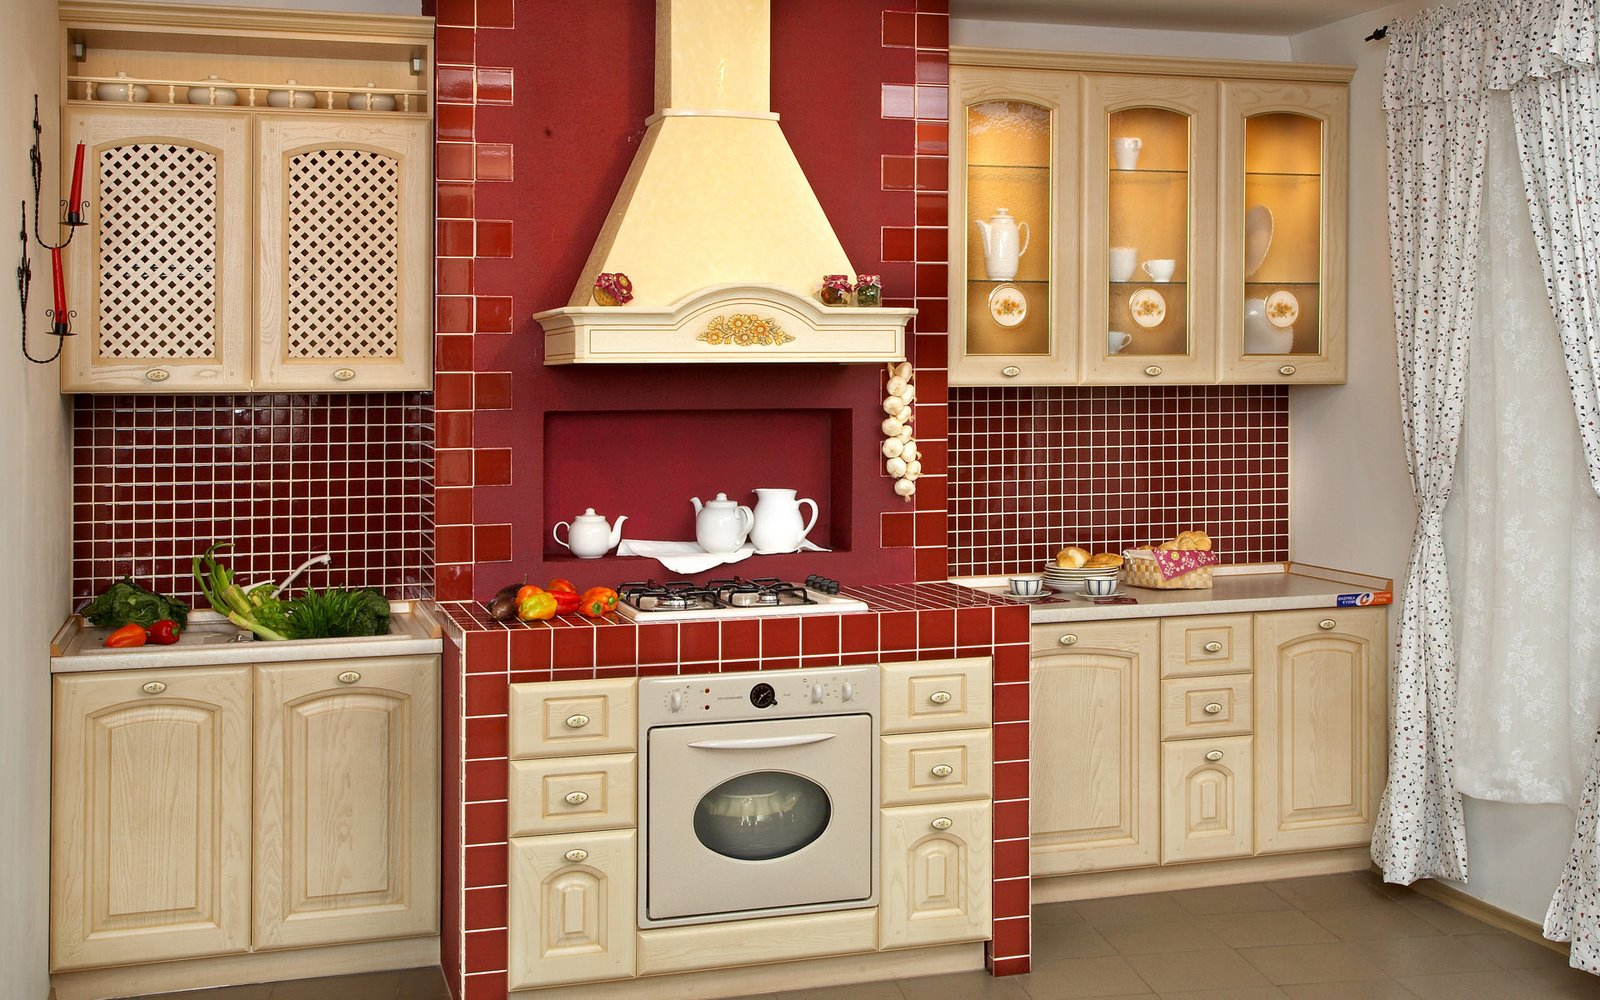 Modern kitchen designs in red interior decorating home for Kitchen styles